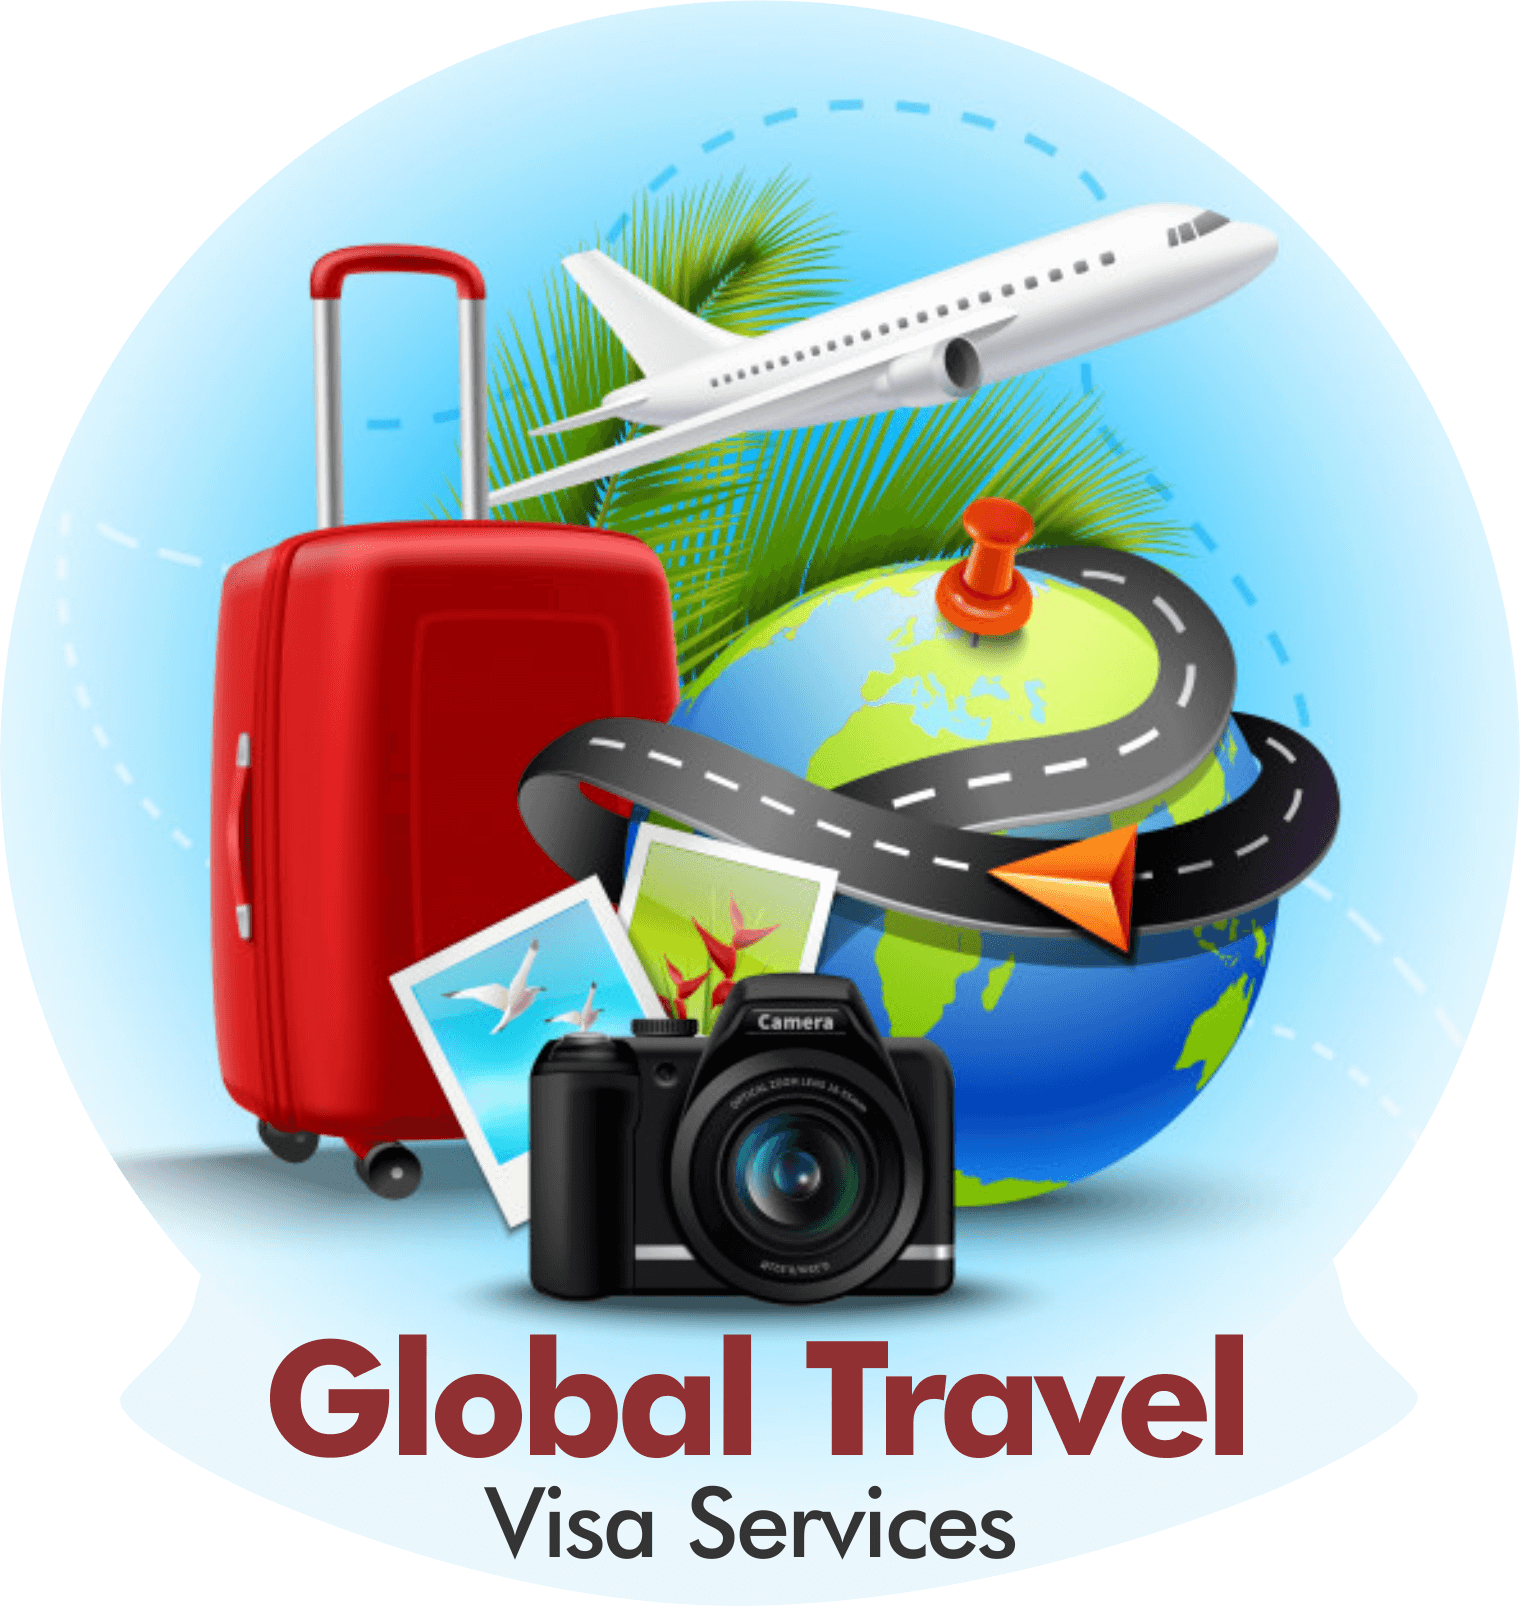 Global Travel and Visa